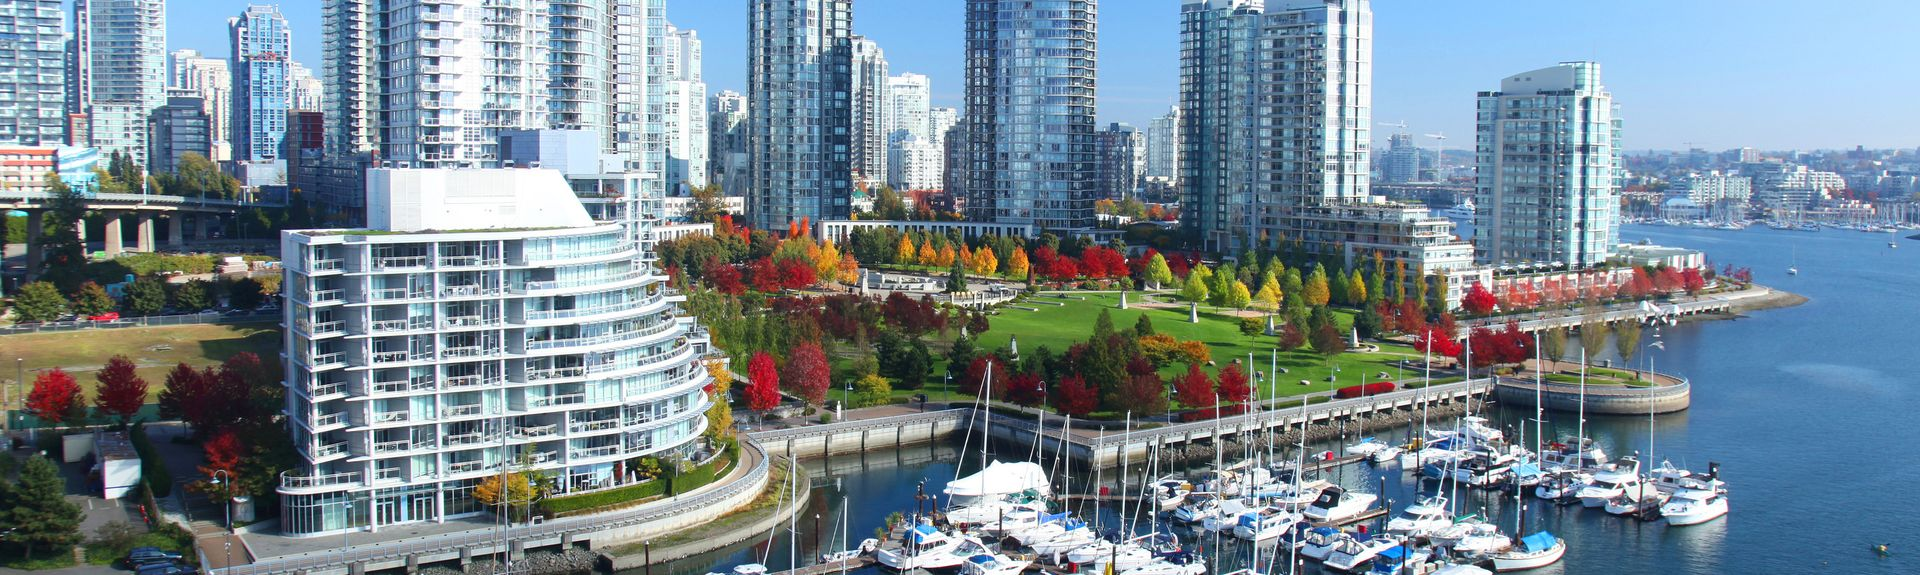 Vancouver, BC, CA Vacation Rentals: condo and apartment rentals & more |  Vrbo